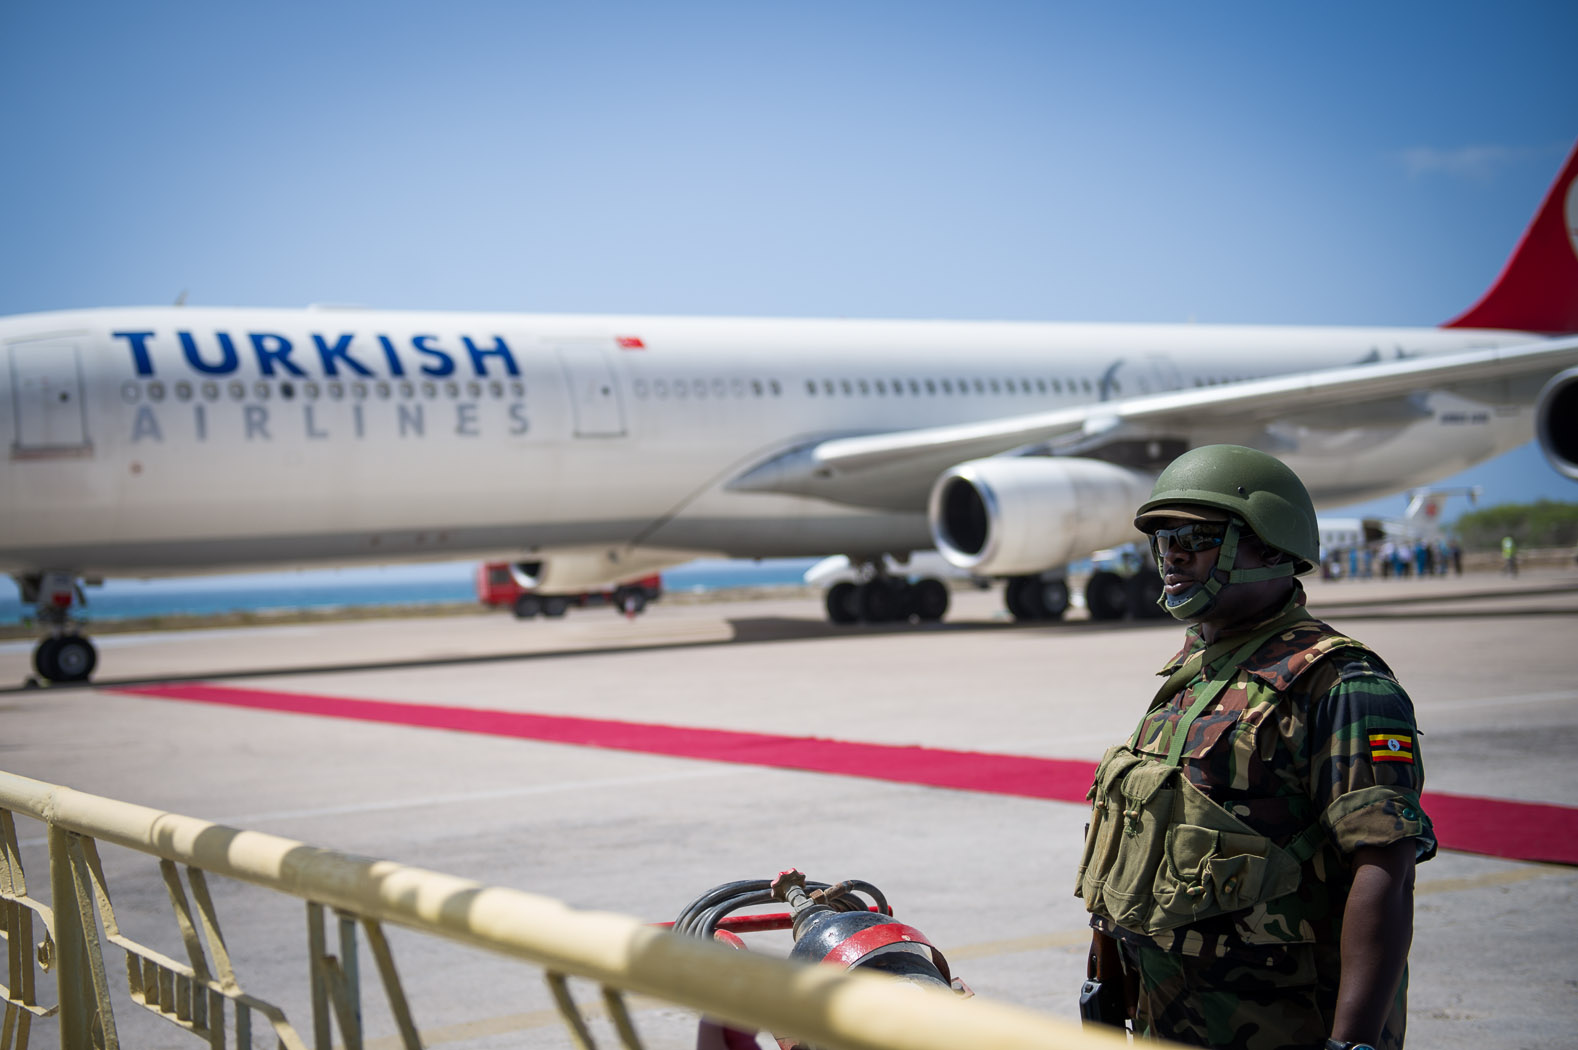 Increased security has meant an increase of investment in the Mogadishu. This was the first long-distance international commercial airliner to land at the airport in two decades; as Turkish Airlines began a regular, scheduled service to the city.